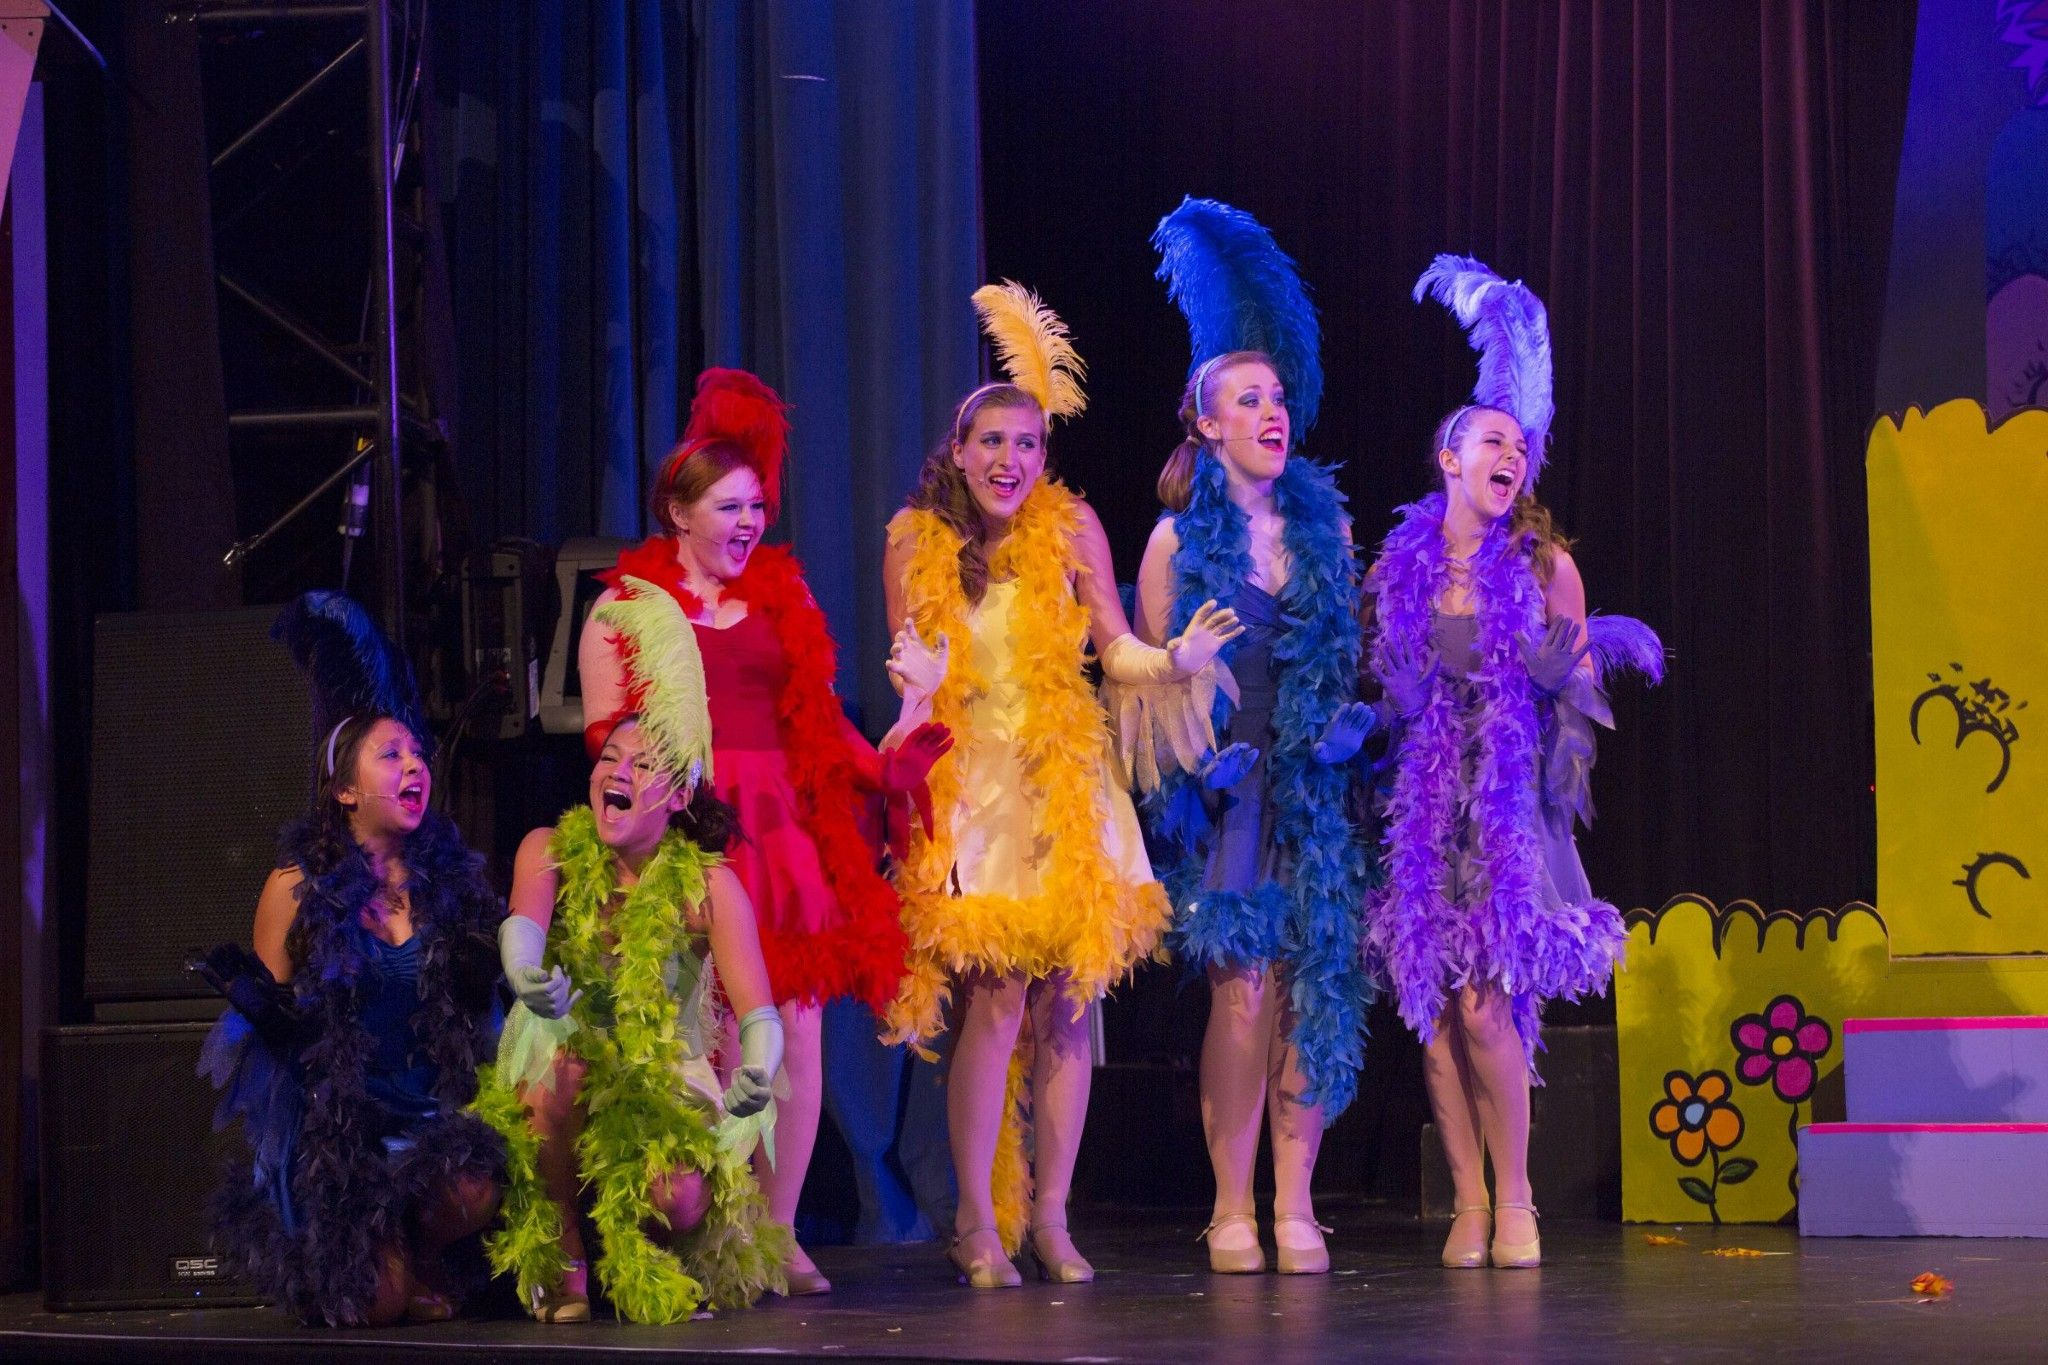 Pin by k pittman on Suessical in 2020 Seussical costumes